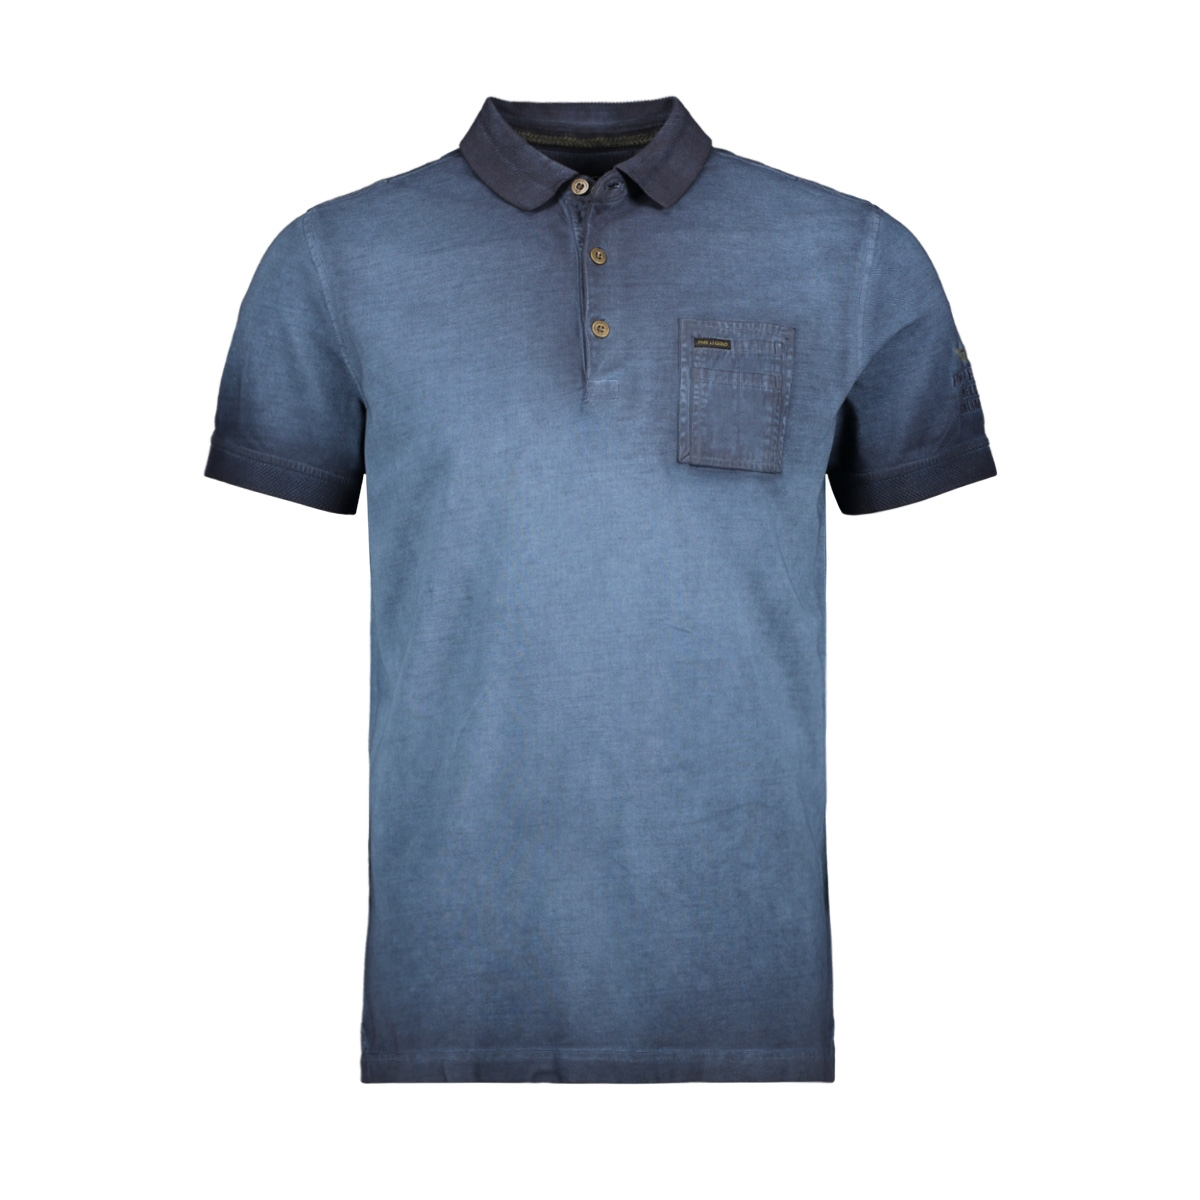 light pique cold polo ppss192864 pme legend polo 5281